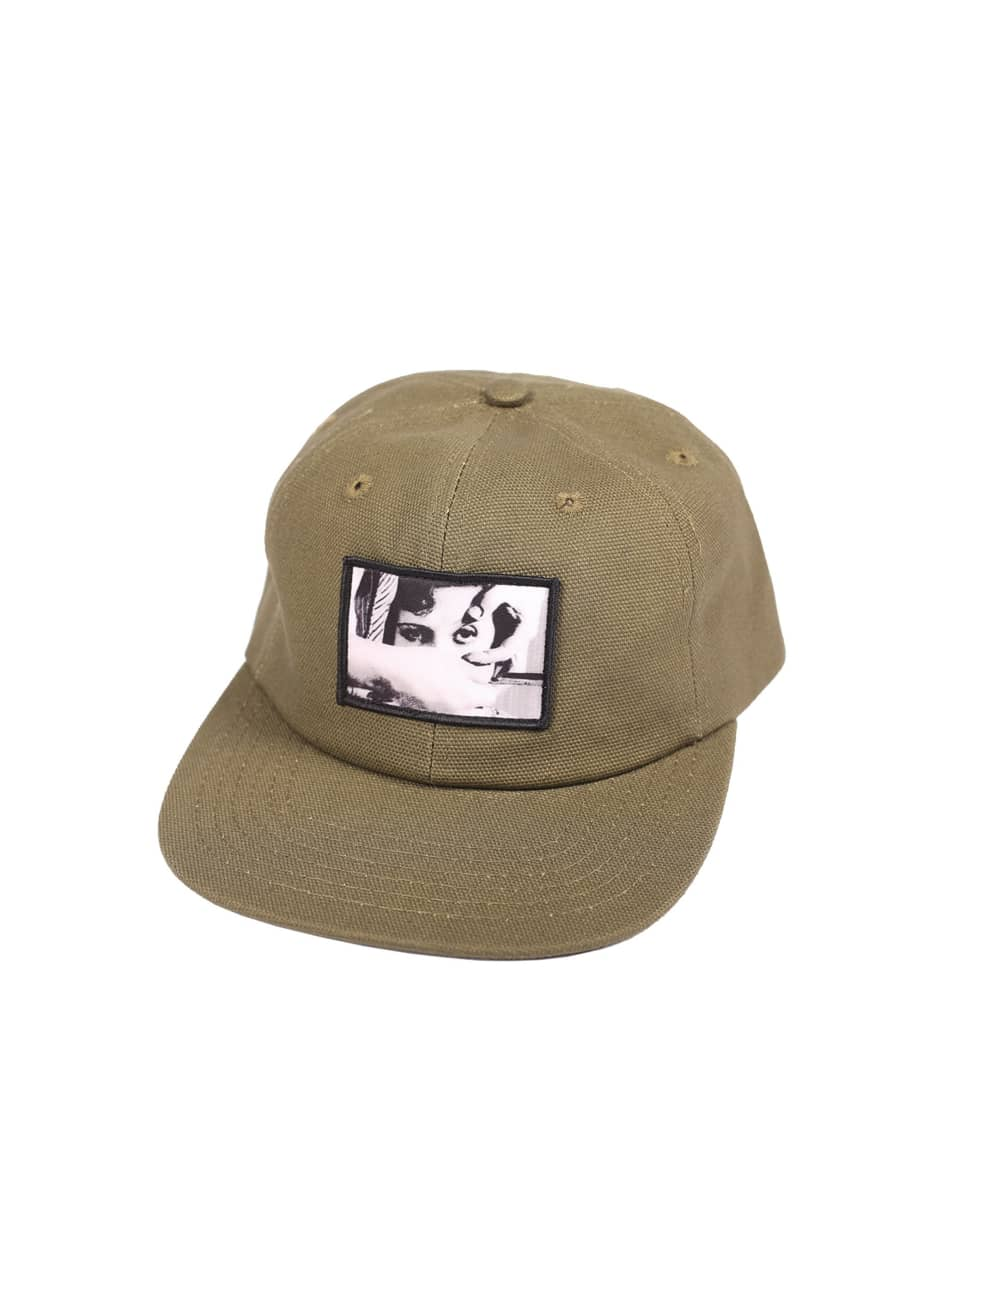 """PICTURE SHOW-""""ANDALOU SNAPBACK HAT""""(OLIVE)   Snapback Cap by Picture Show Studios 1"""